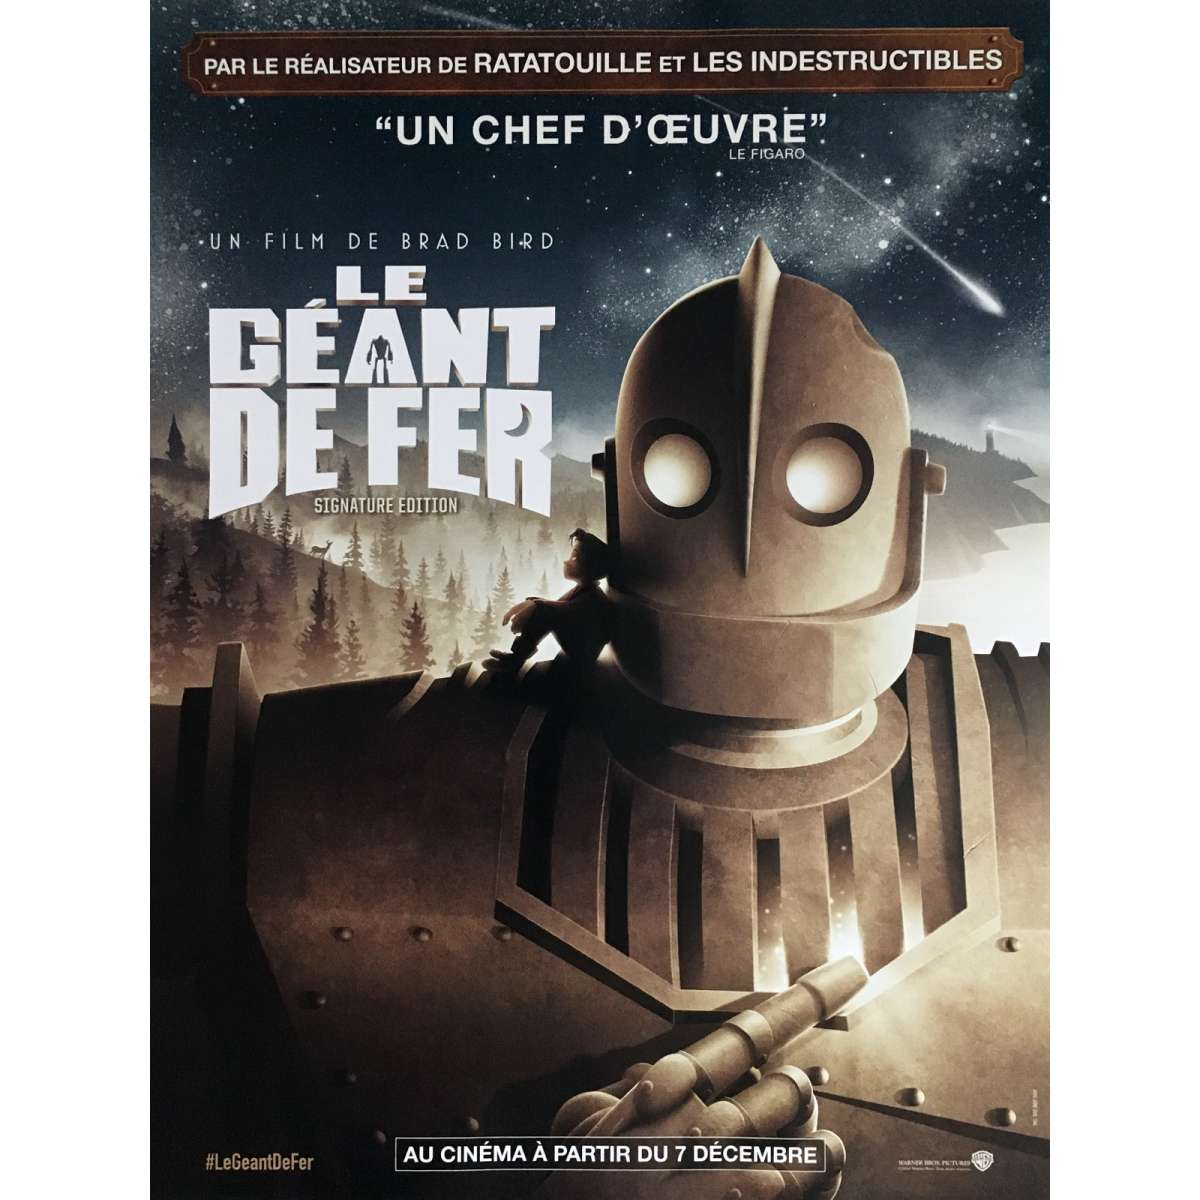 the iron giant movie poster. Black Bedroom Furniture Sets. Home Design Ideas